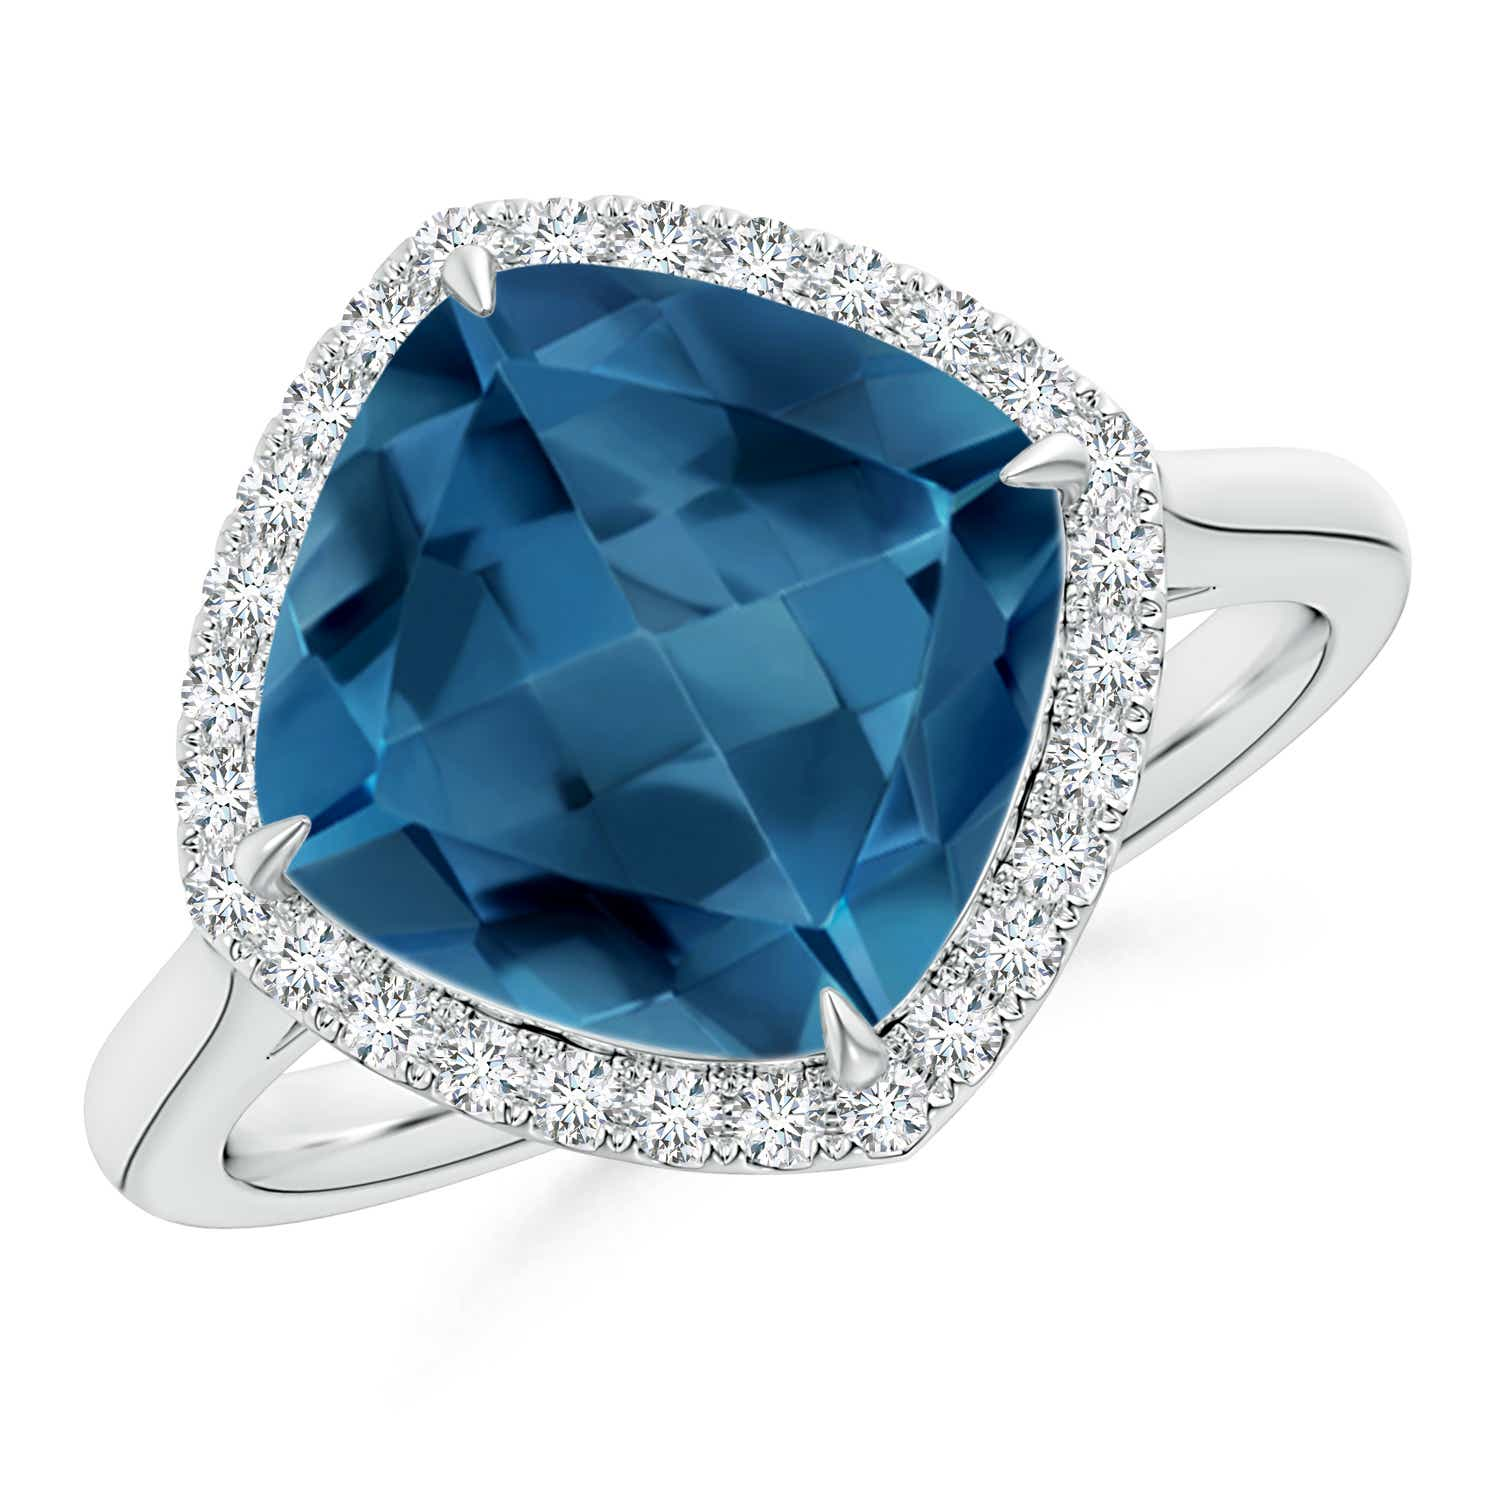 Angara Cocktail Ring with Natural London Blue Topaz in Rose Gold iaG6uOg943